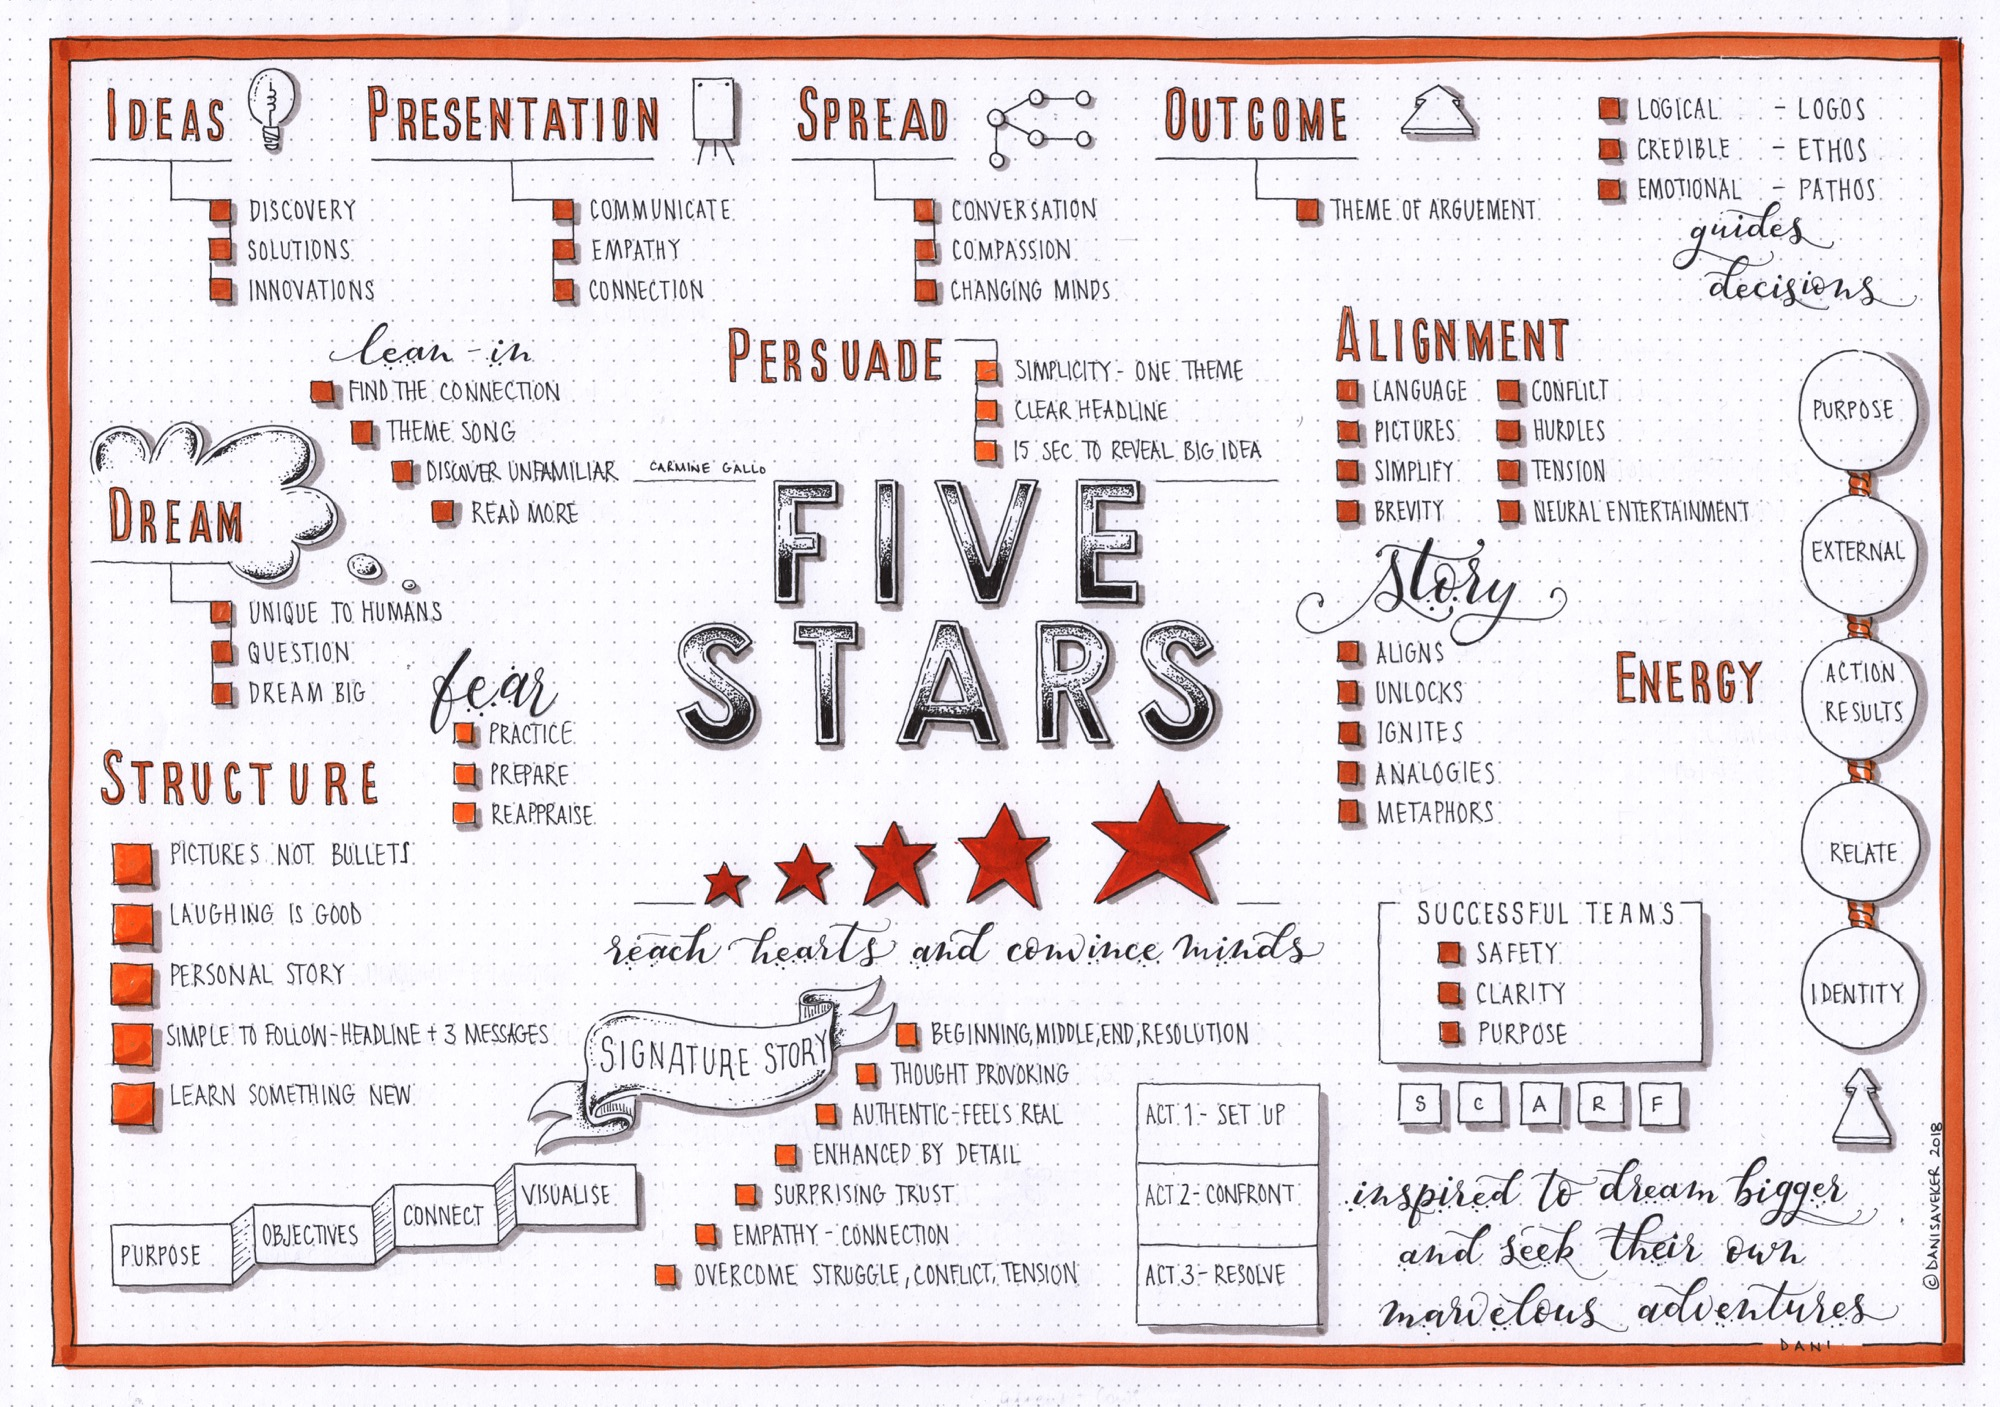 Five Stars (Carmine Gallo)